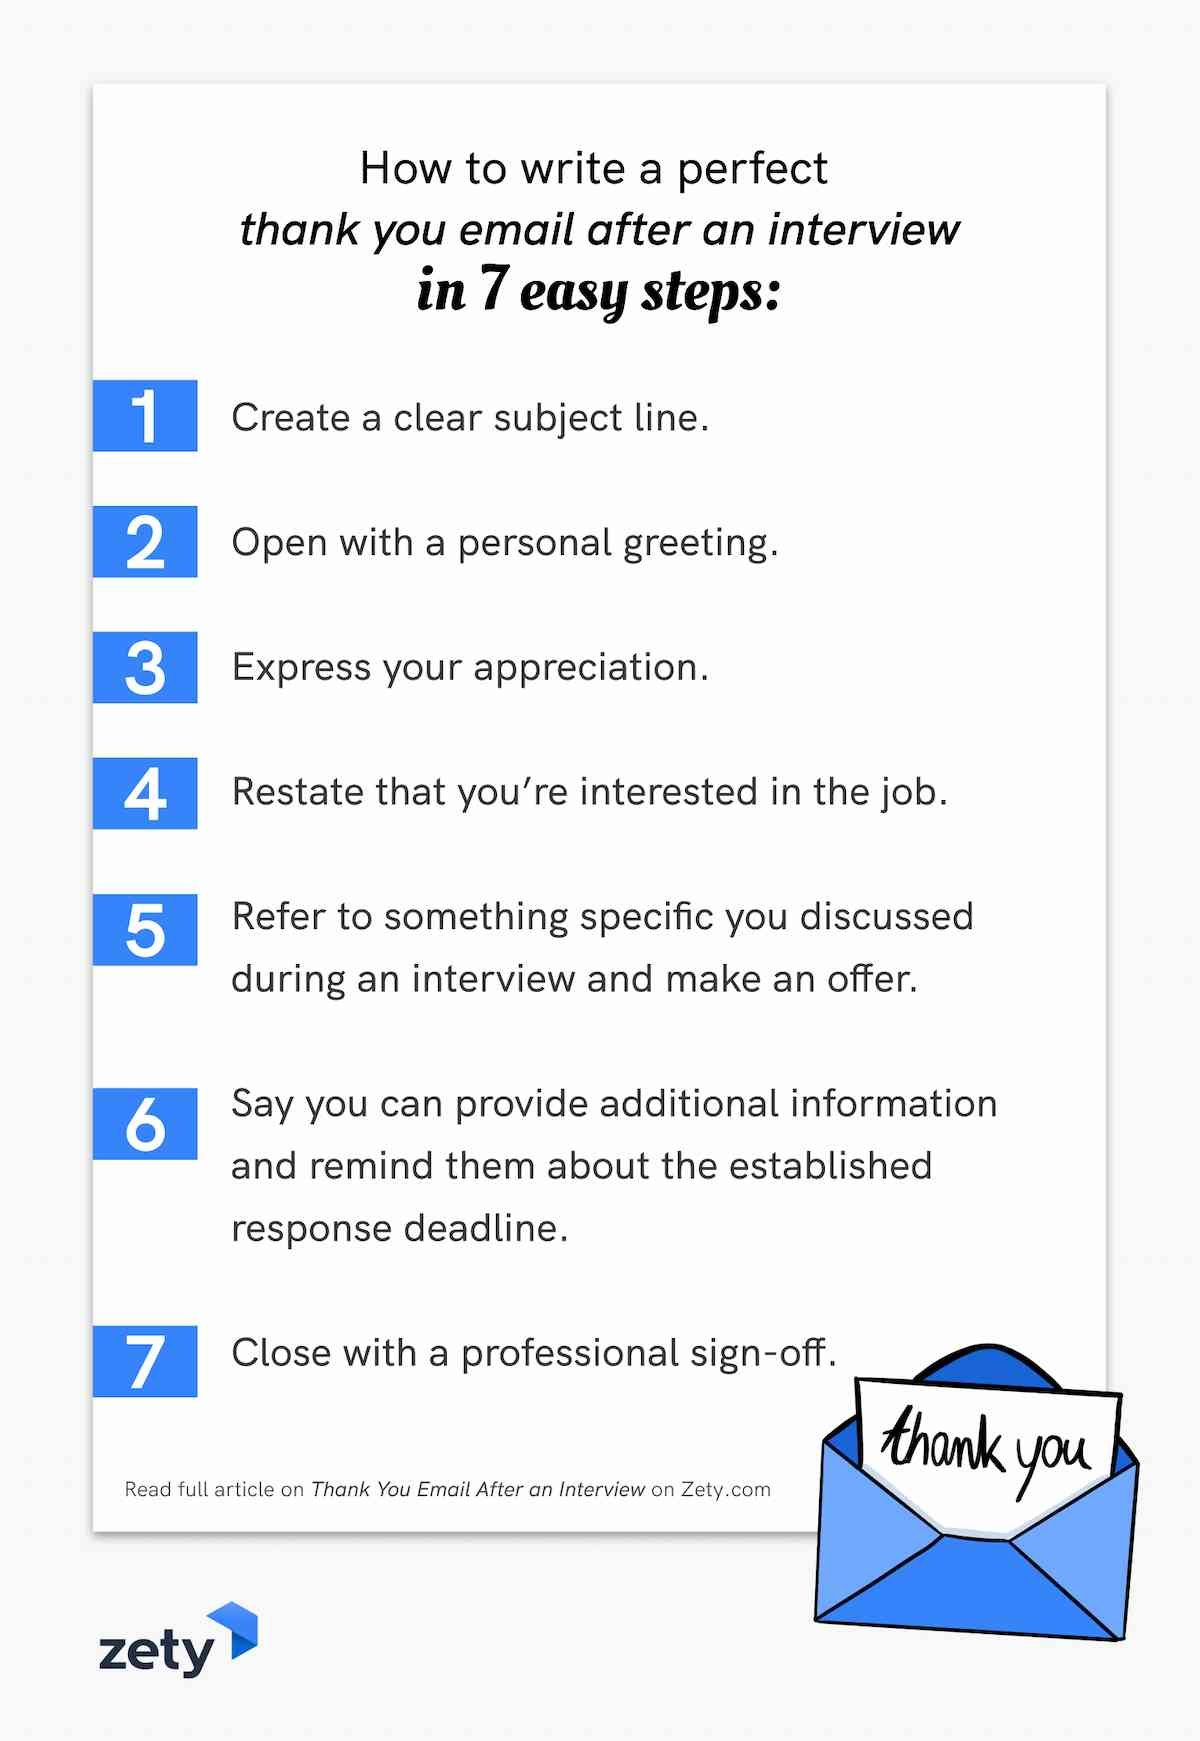 How to write a perfect thank you email after an interview